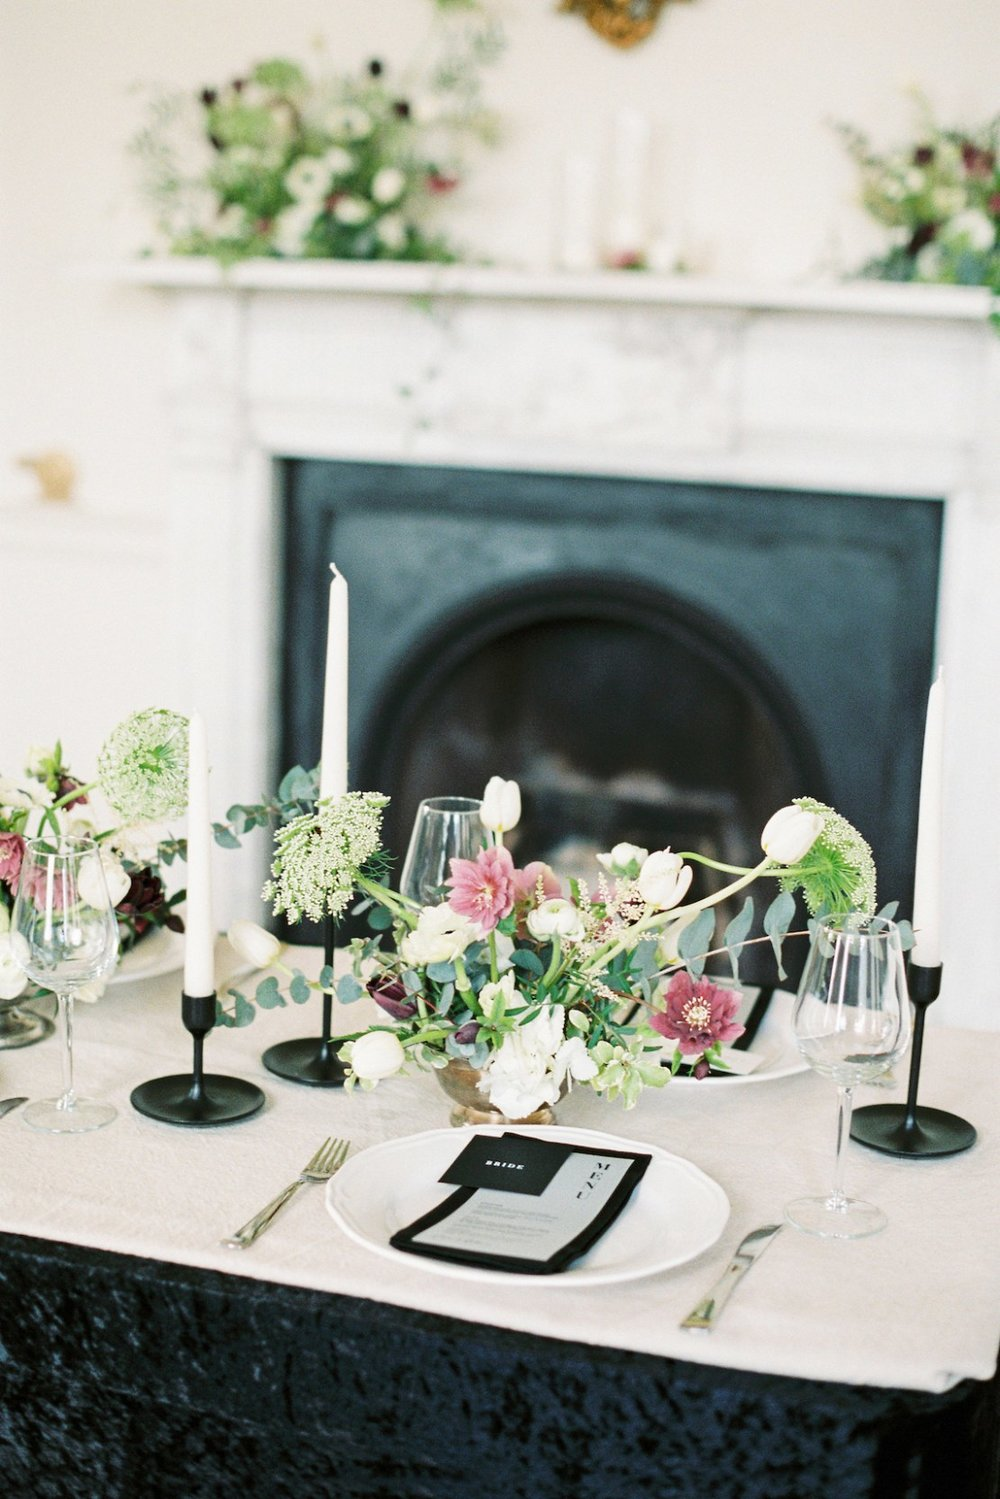 Luxurious-Coco-Chanel-Inspired-Wedding-Ideas-Bowtie-Belle-Photography-8-min.jpg